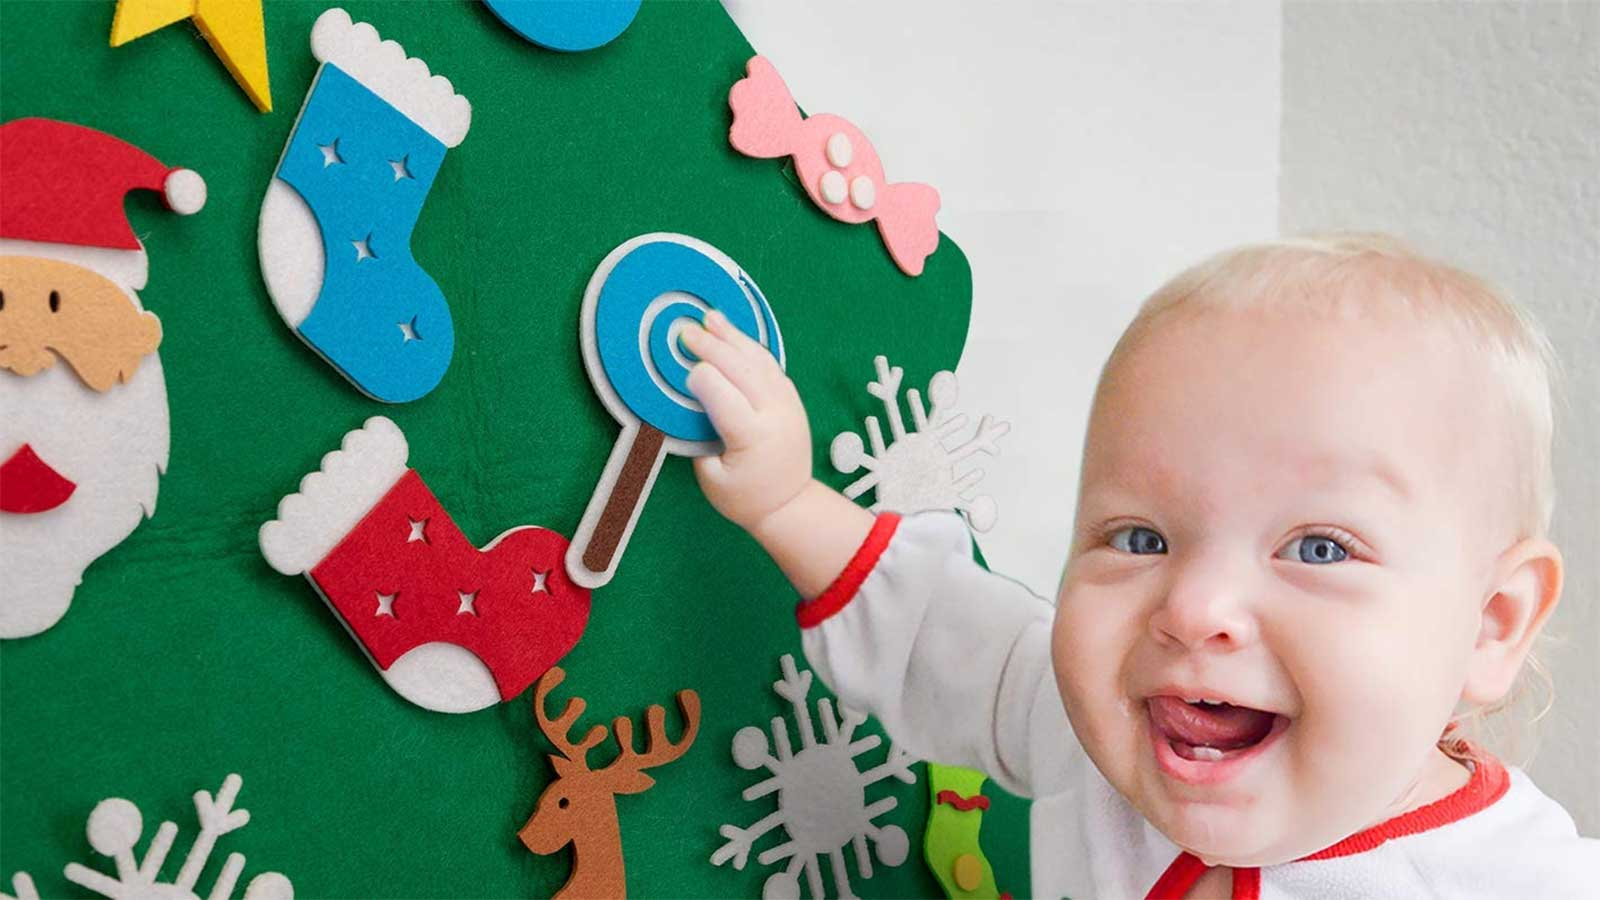 A toddler pulling on a felt ornament stuck to a flat felt Christmas tree hanging on the wall.